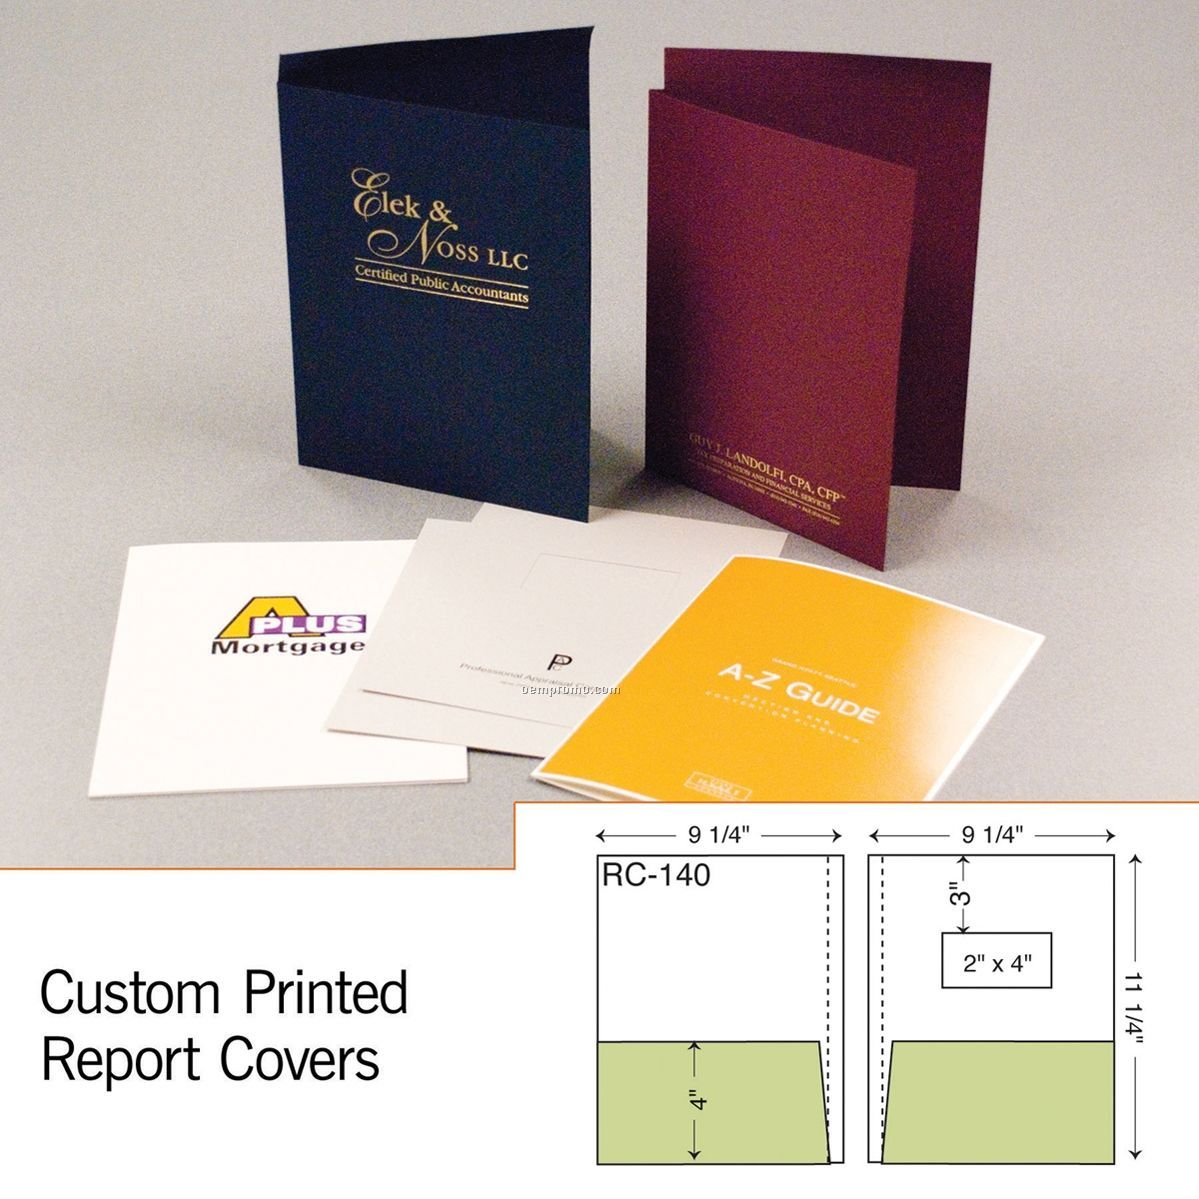 2 Part Report Cover W/ Double Pocket (1 Color/1 Side)